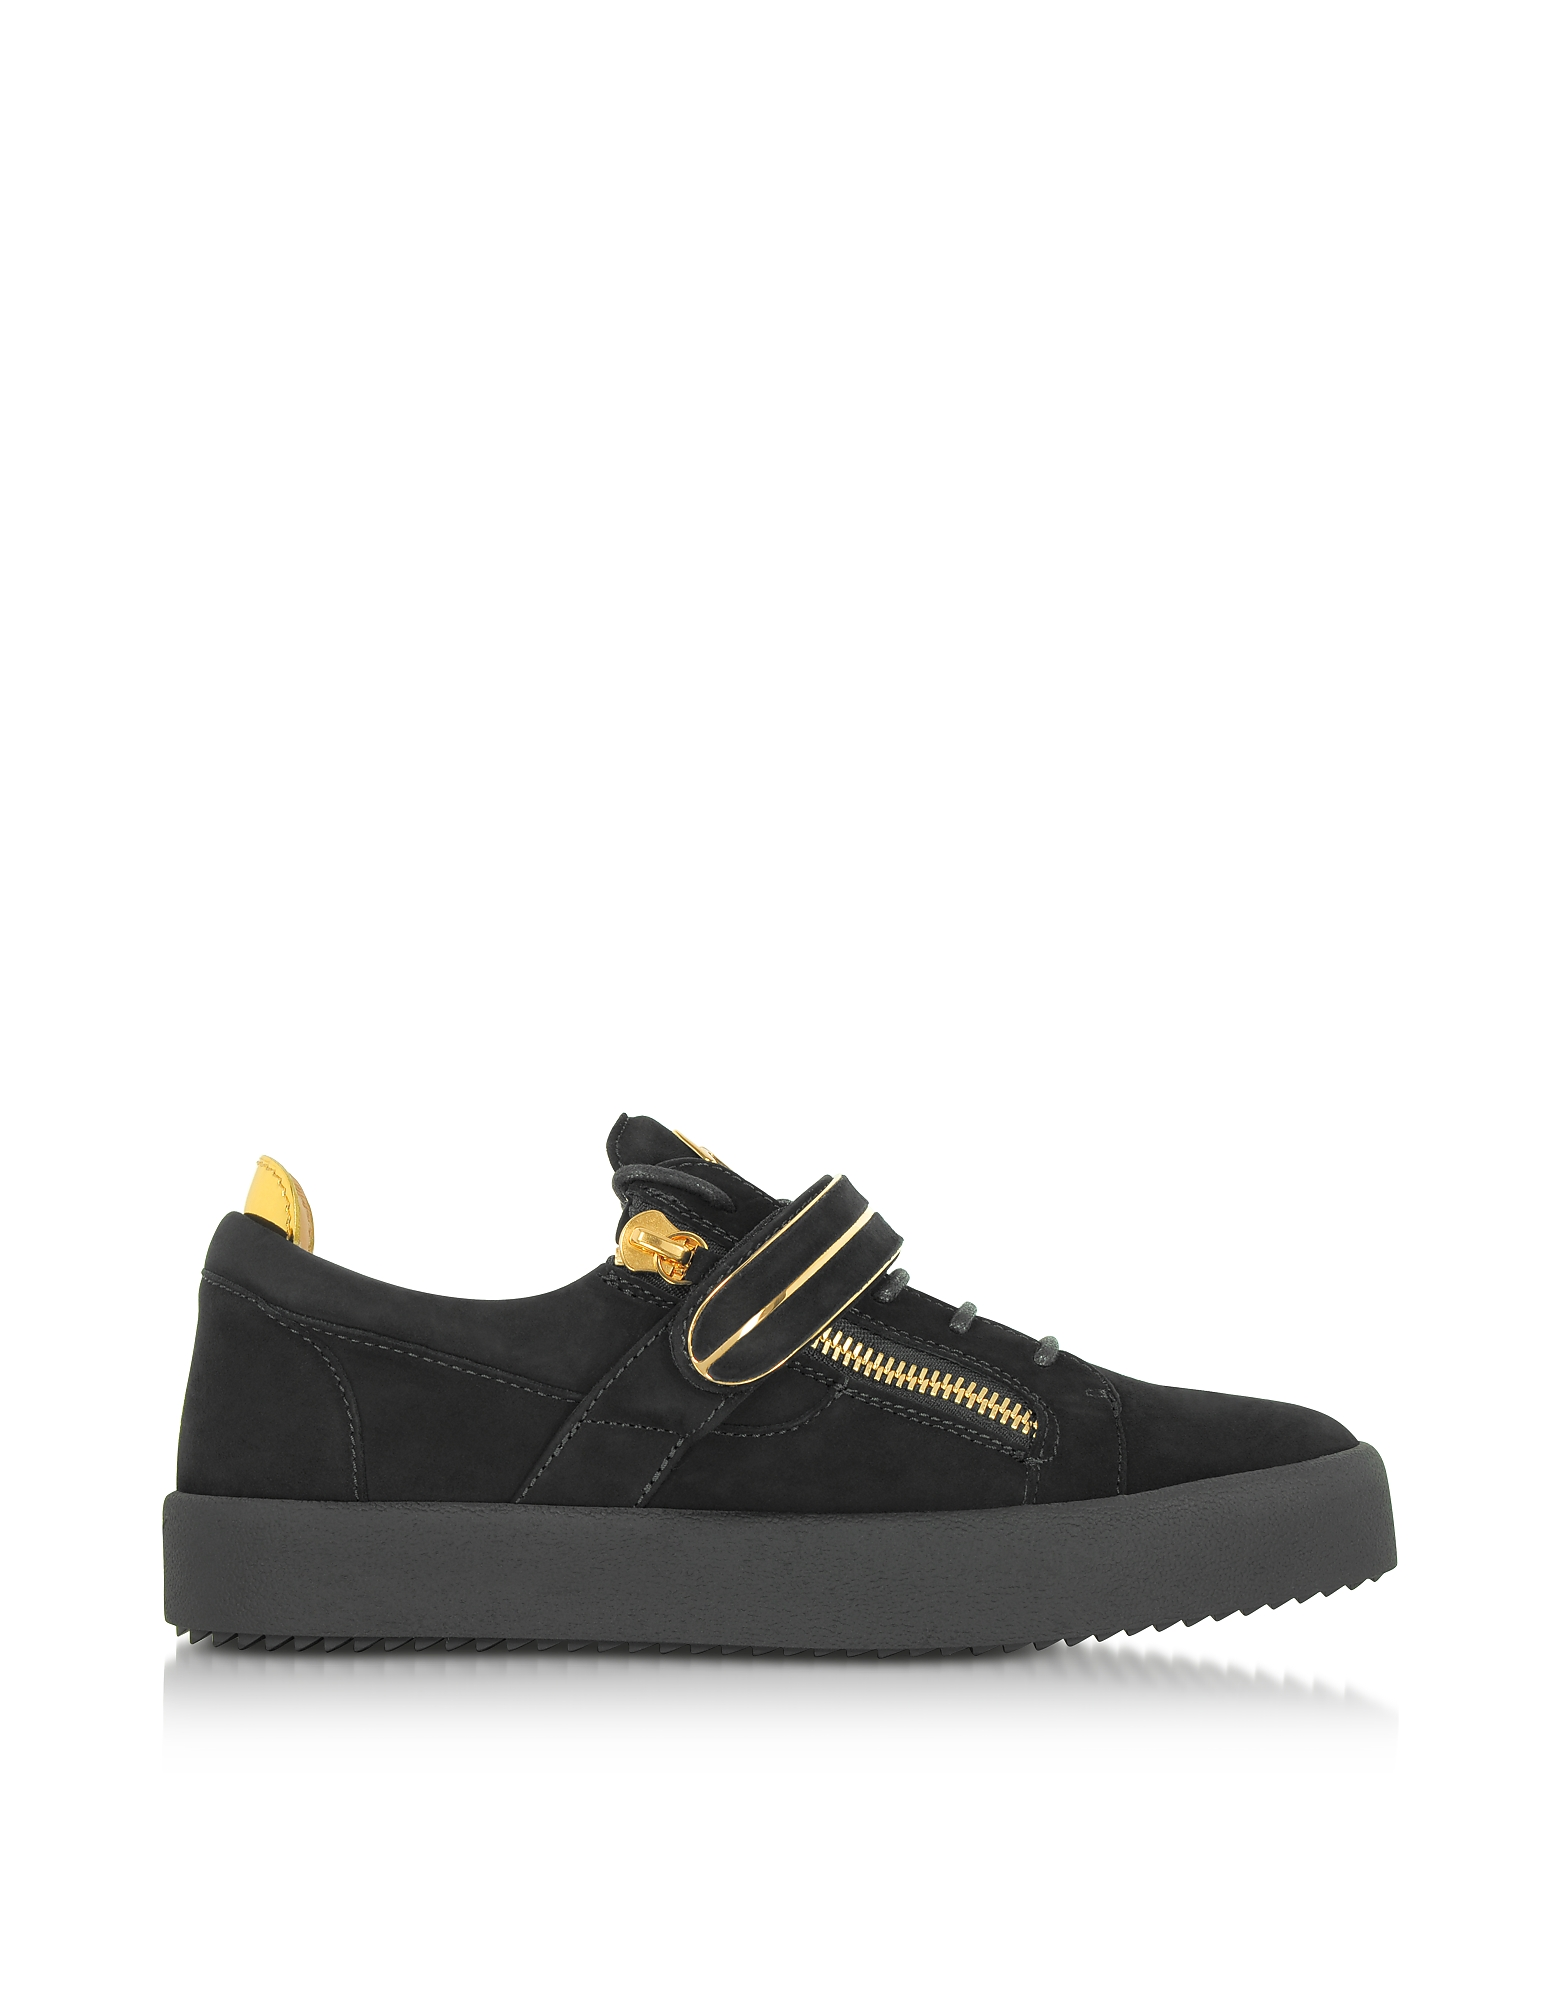 Giuseppe Zanotti Shoes, Black Suede Low Top Men's Sneakers